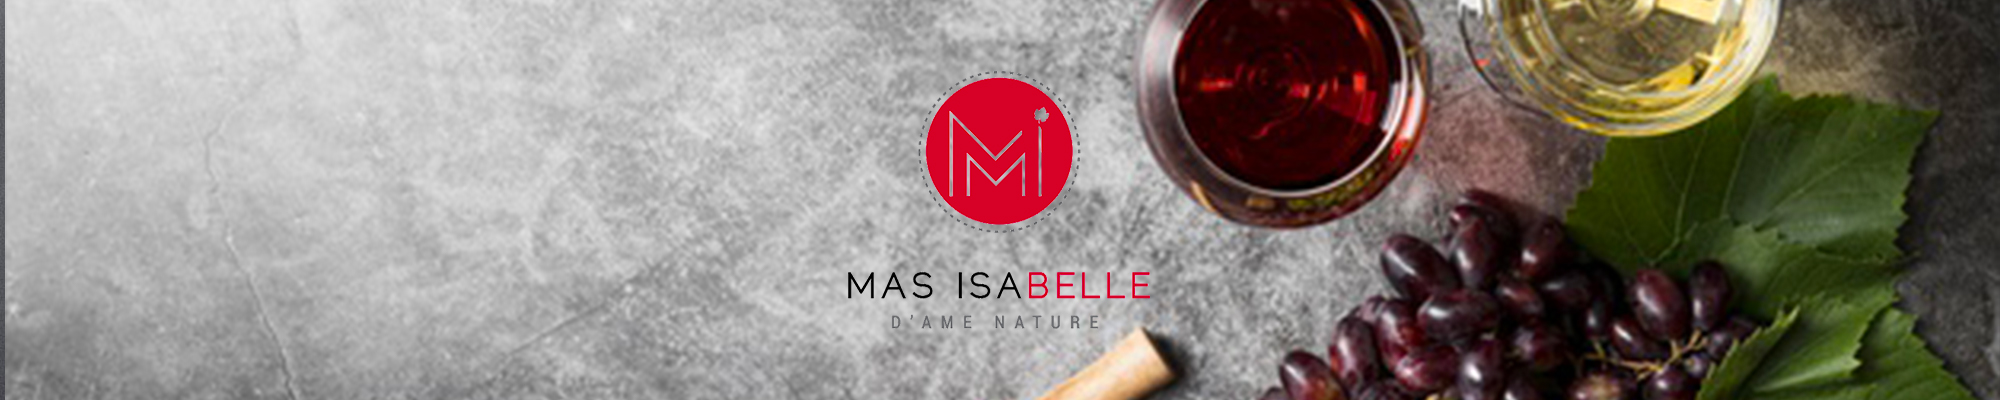 Mas Isabelle